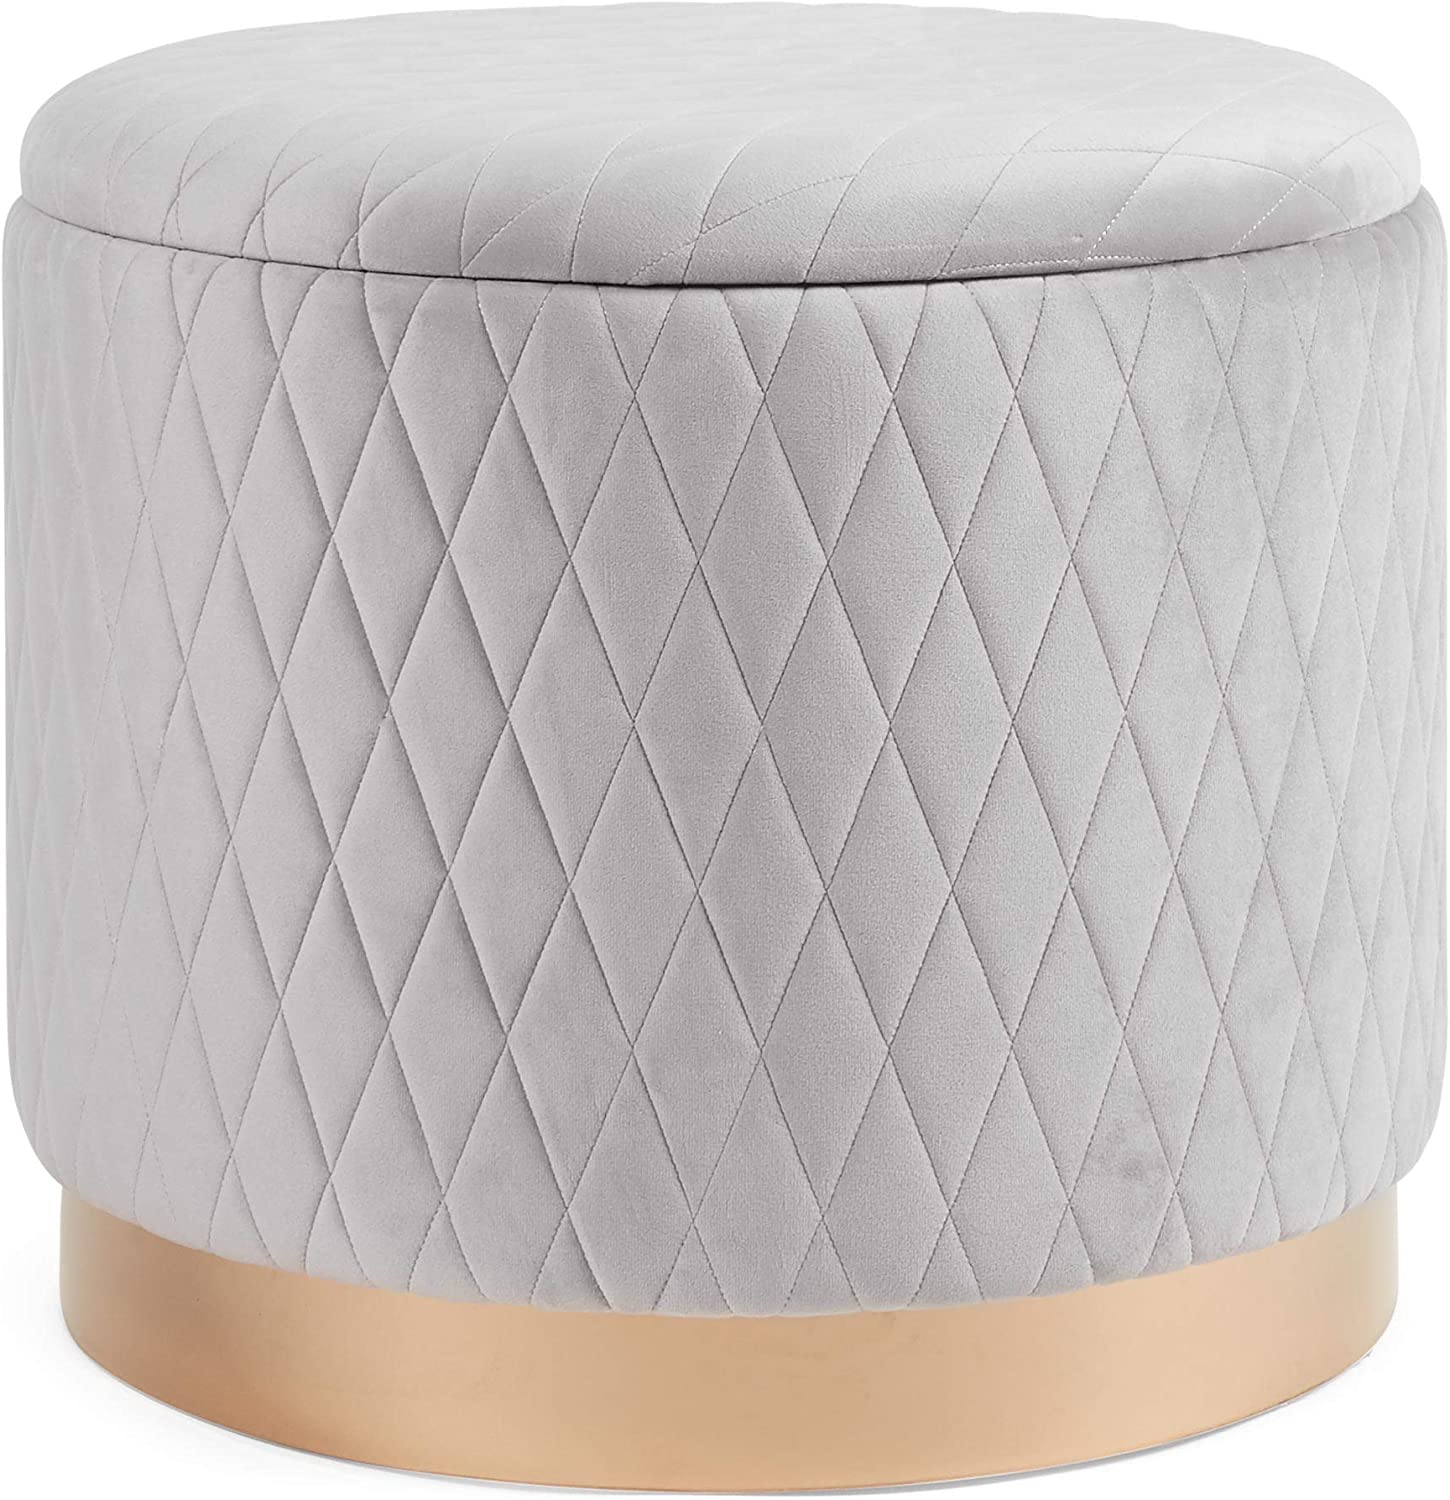 Ottoman Footstool Storage Round Quilted Pouffe Stool Upholstered Footrest /& Lid